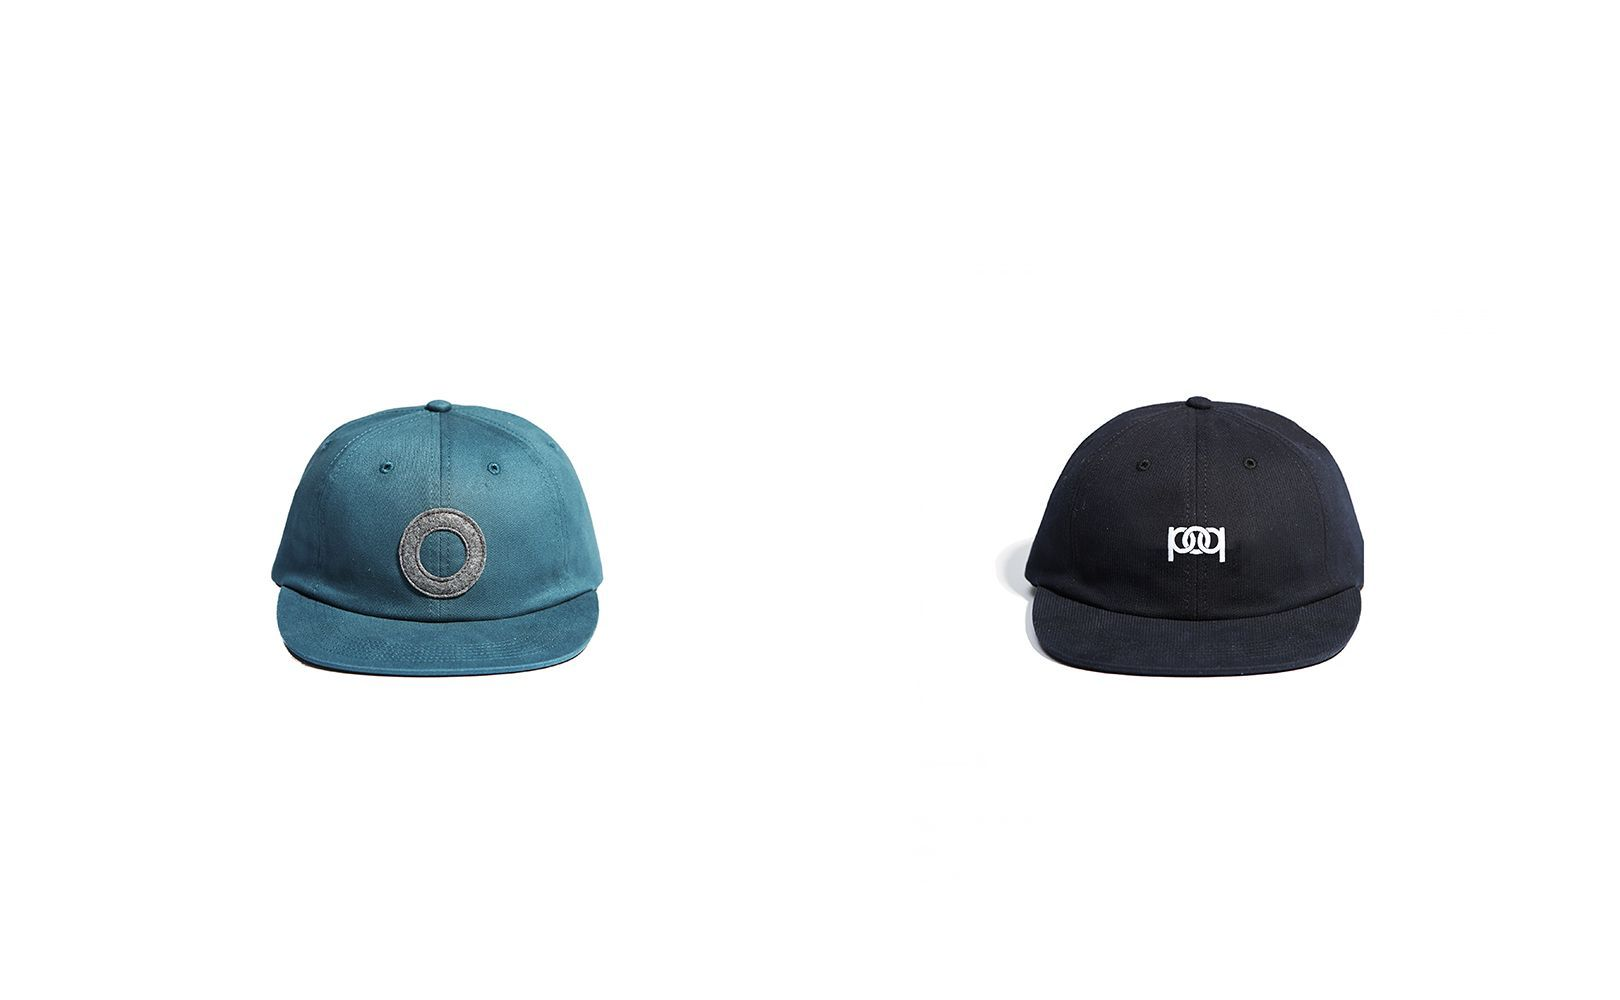 pop-trading-company-aw17-product-o-sixpanel-hat-dark-teal-parra-cap